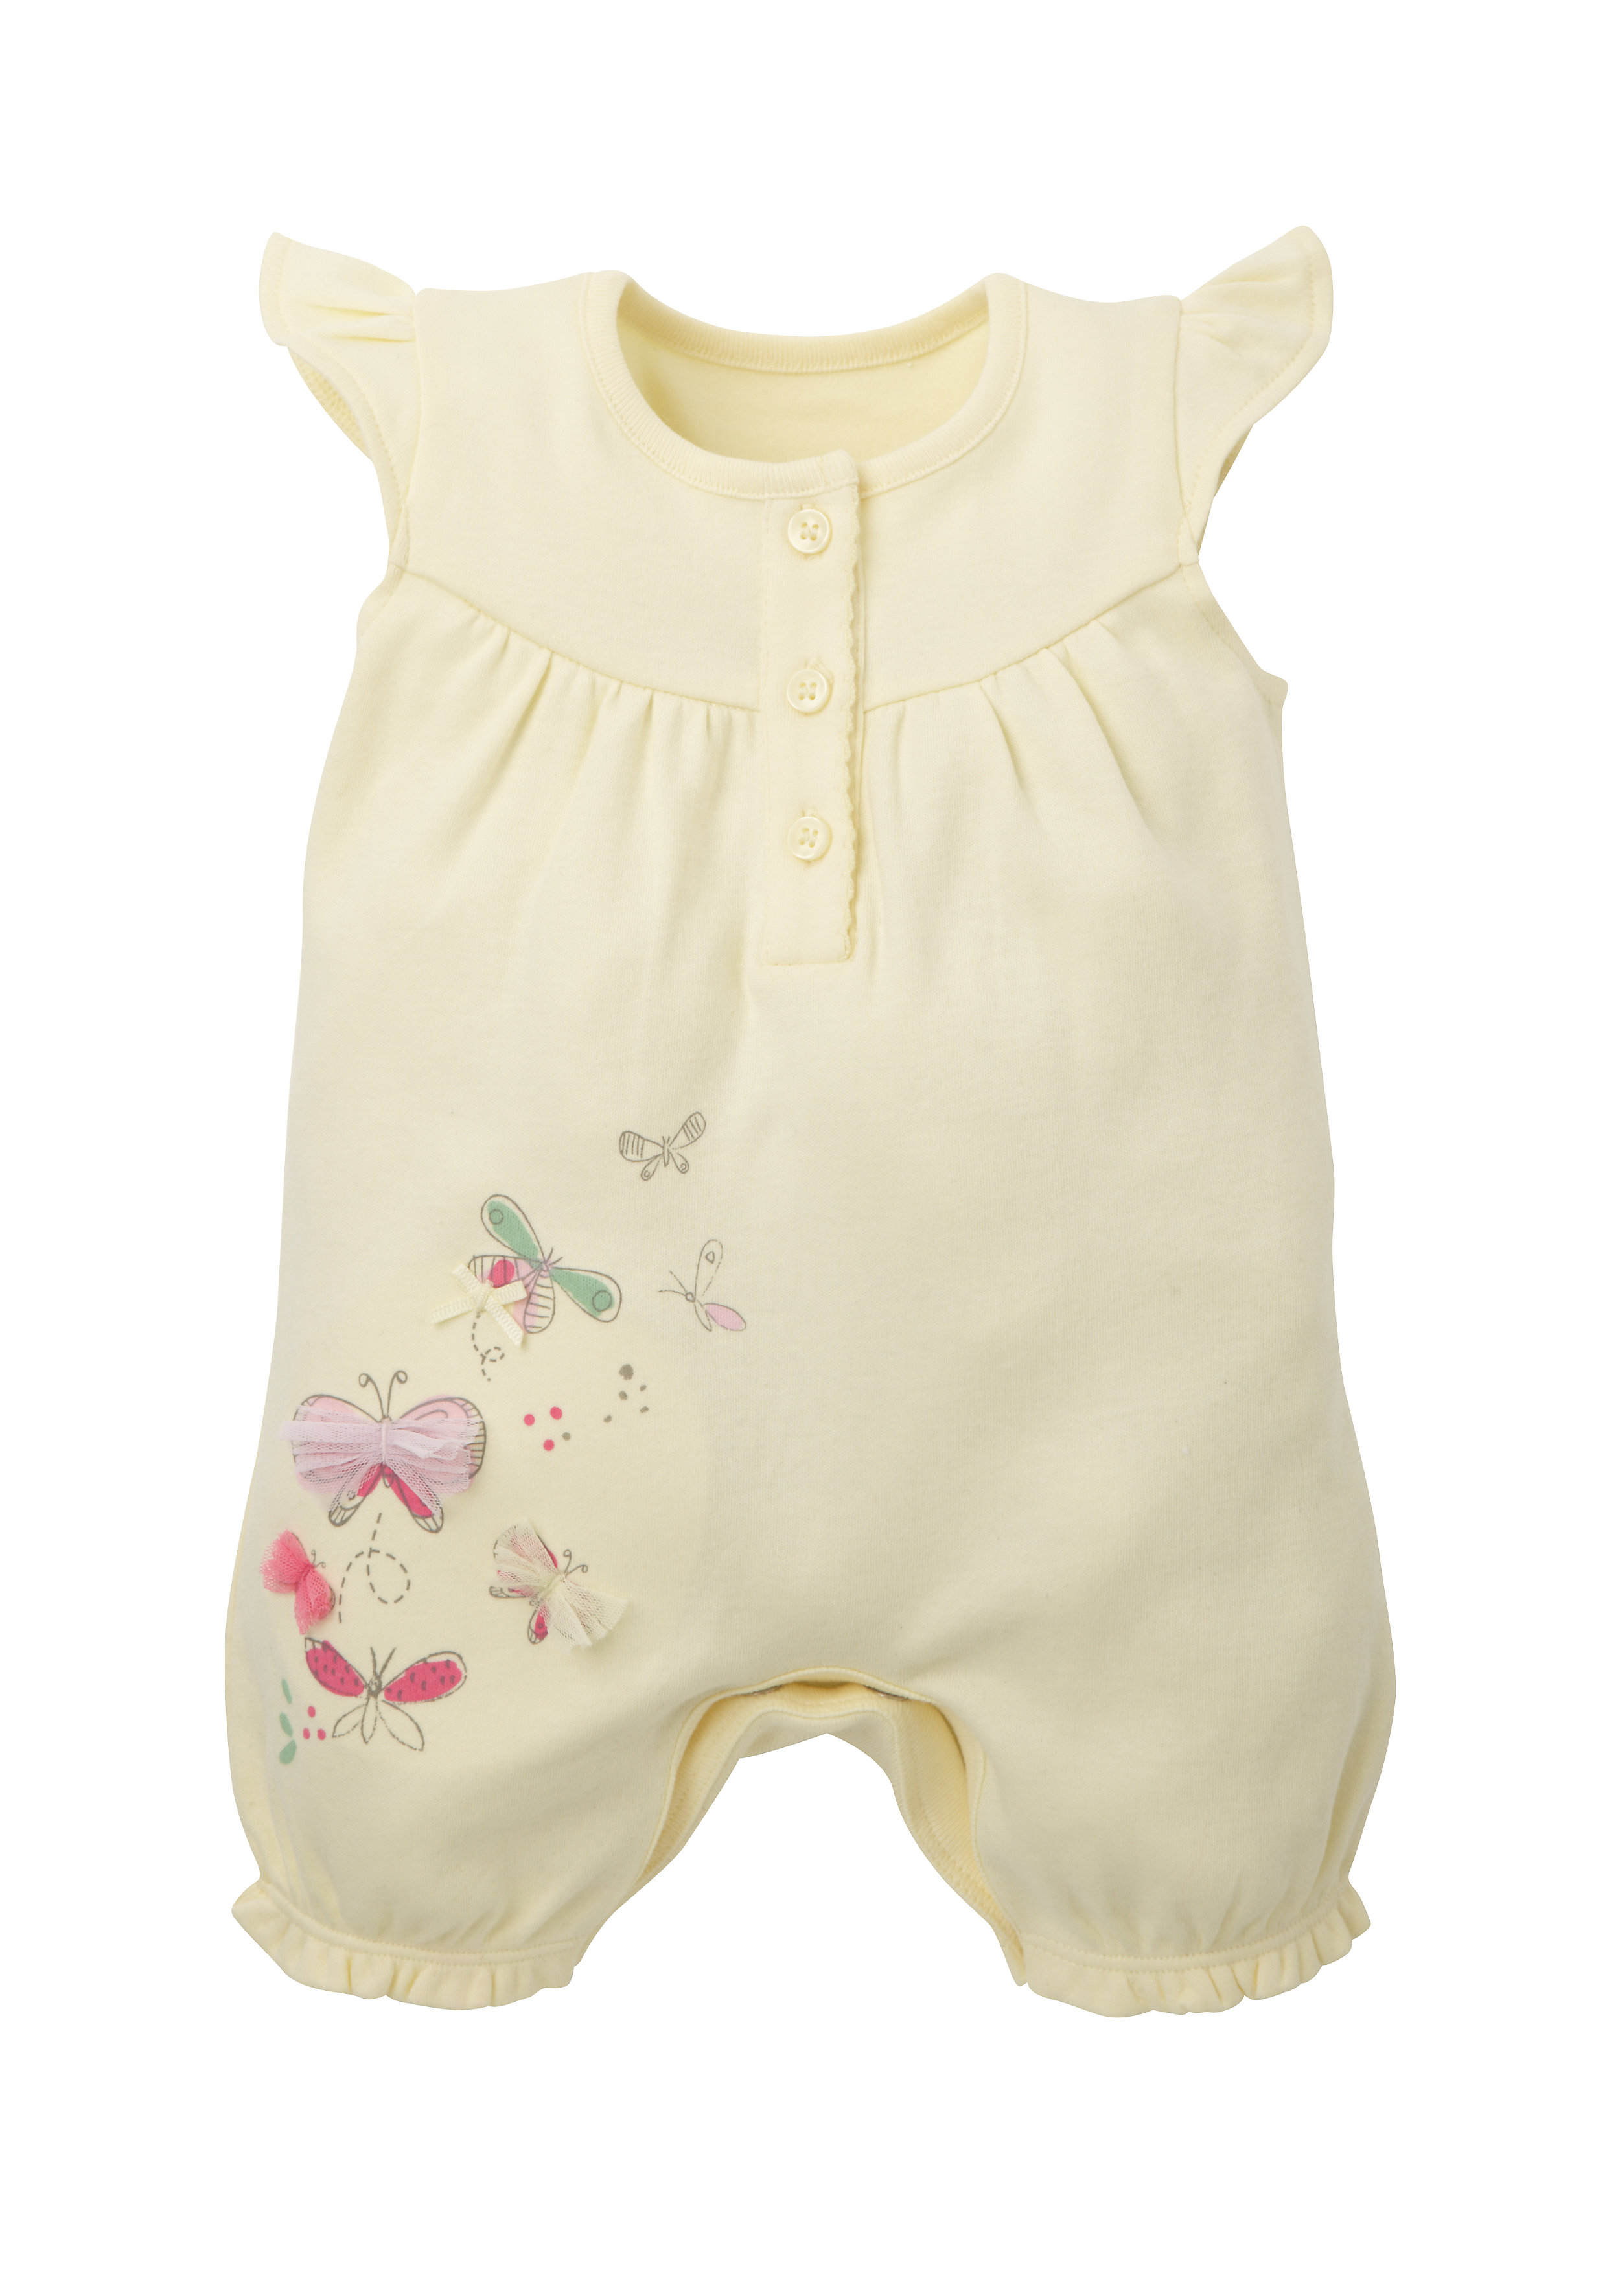 Mothercare | Girls Half Sleeves Romper Butterfly Design - Yellow